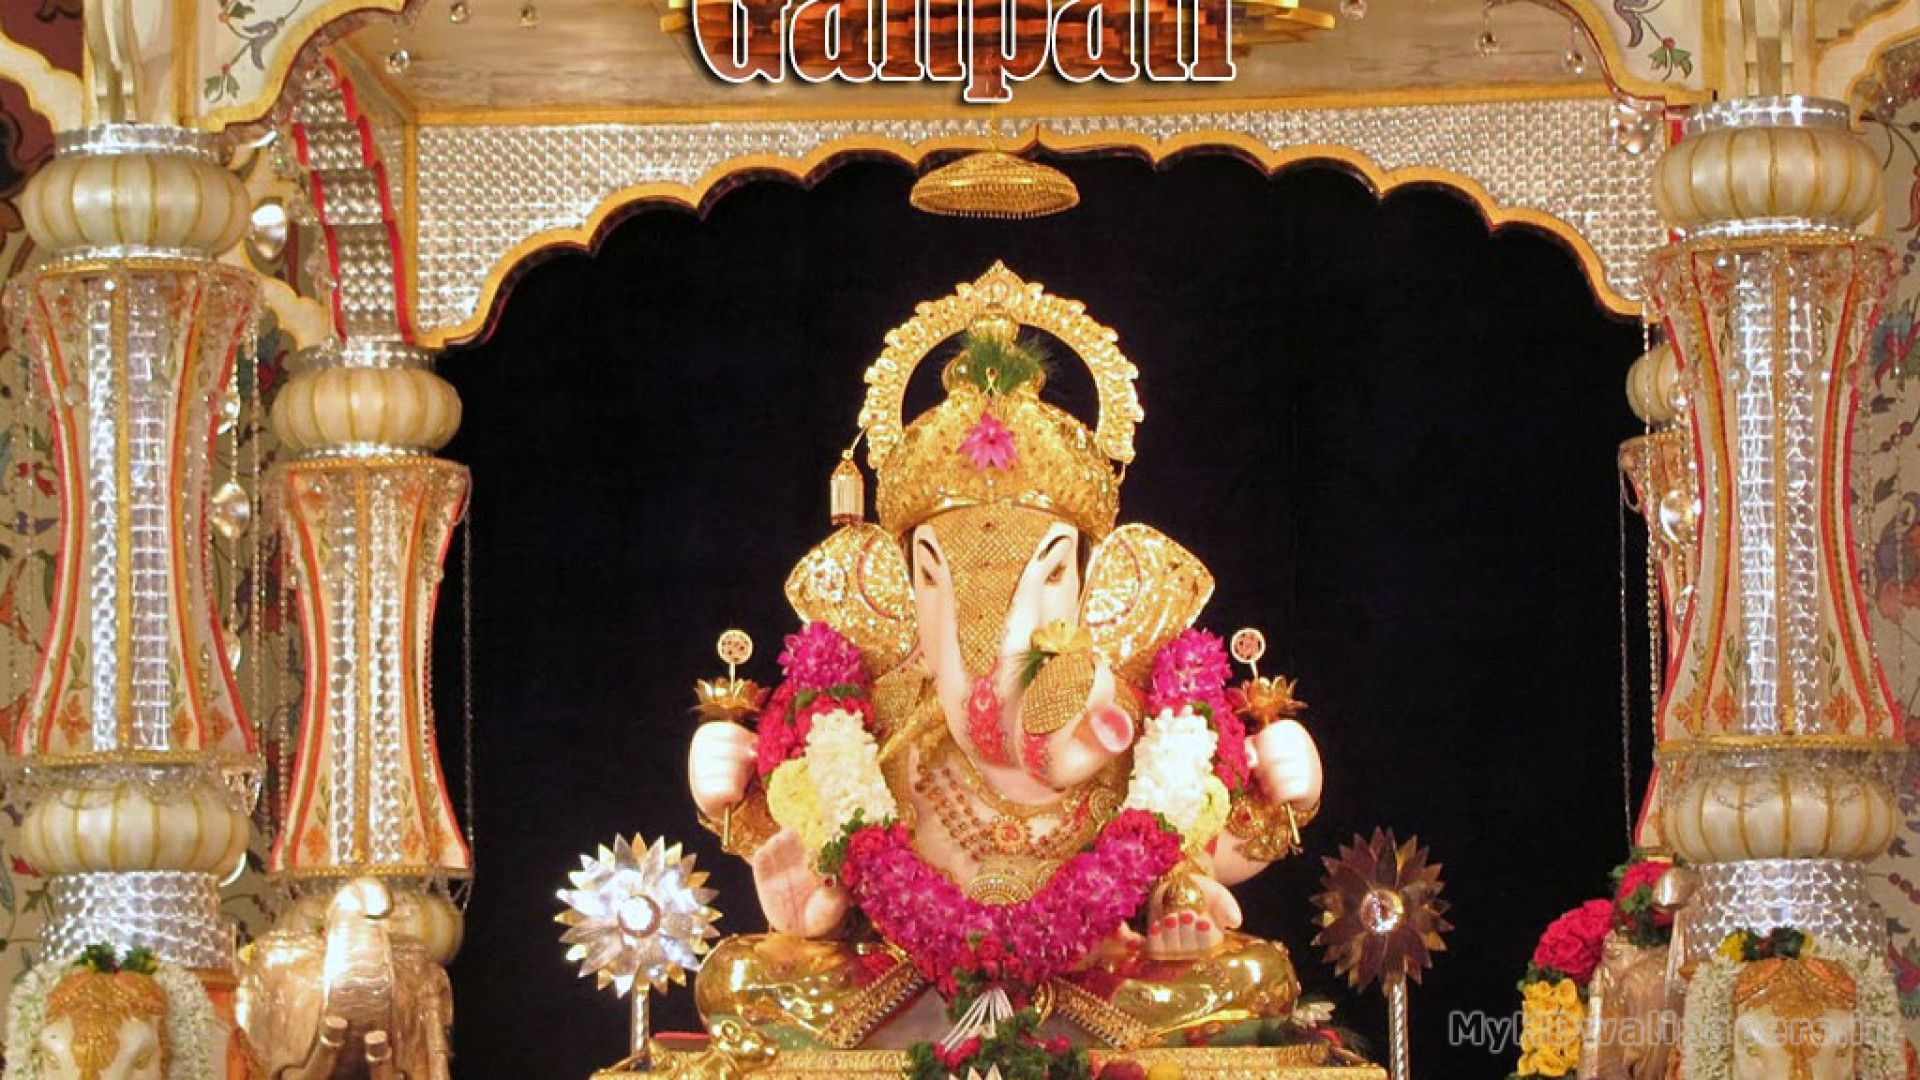 Click Here To Download In HD Format Gtgt Siddhivinayak Wallpaper For Pc